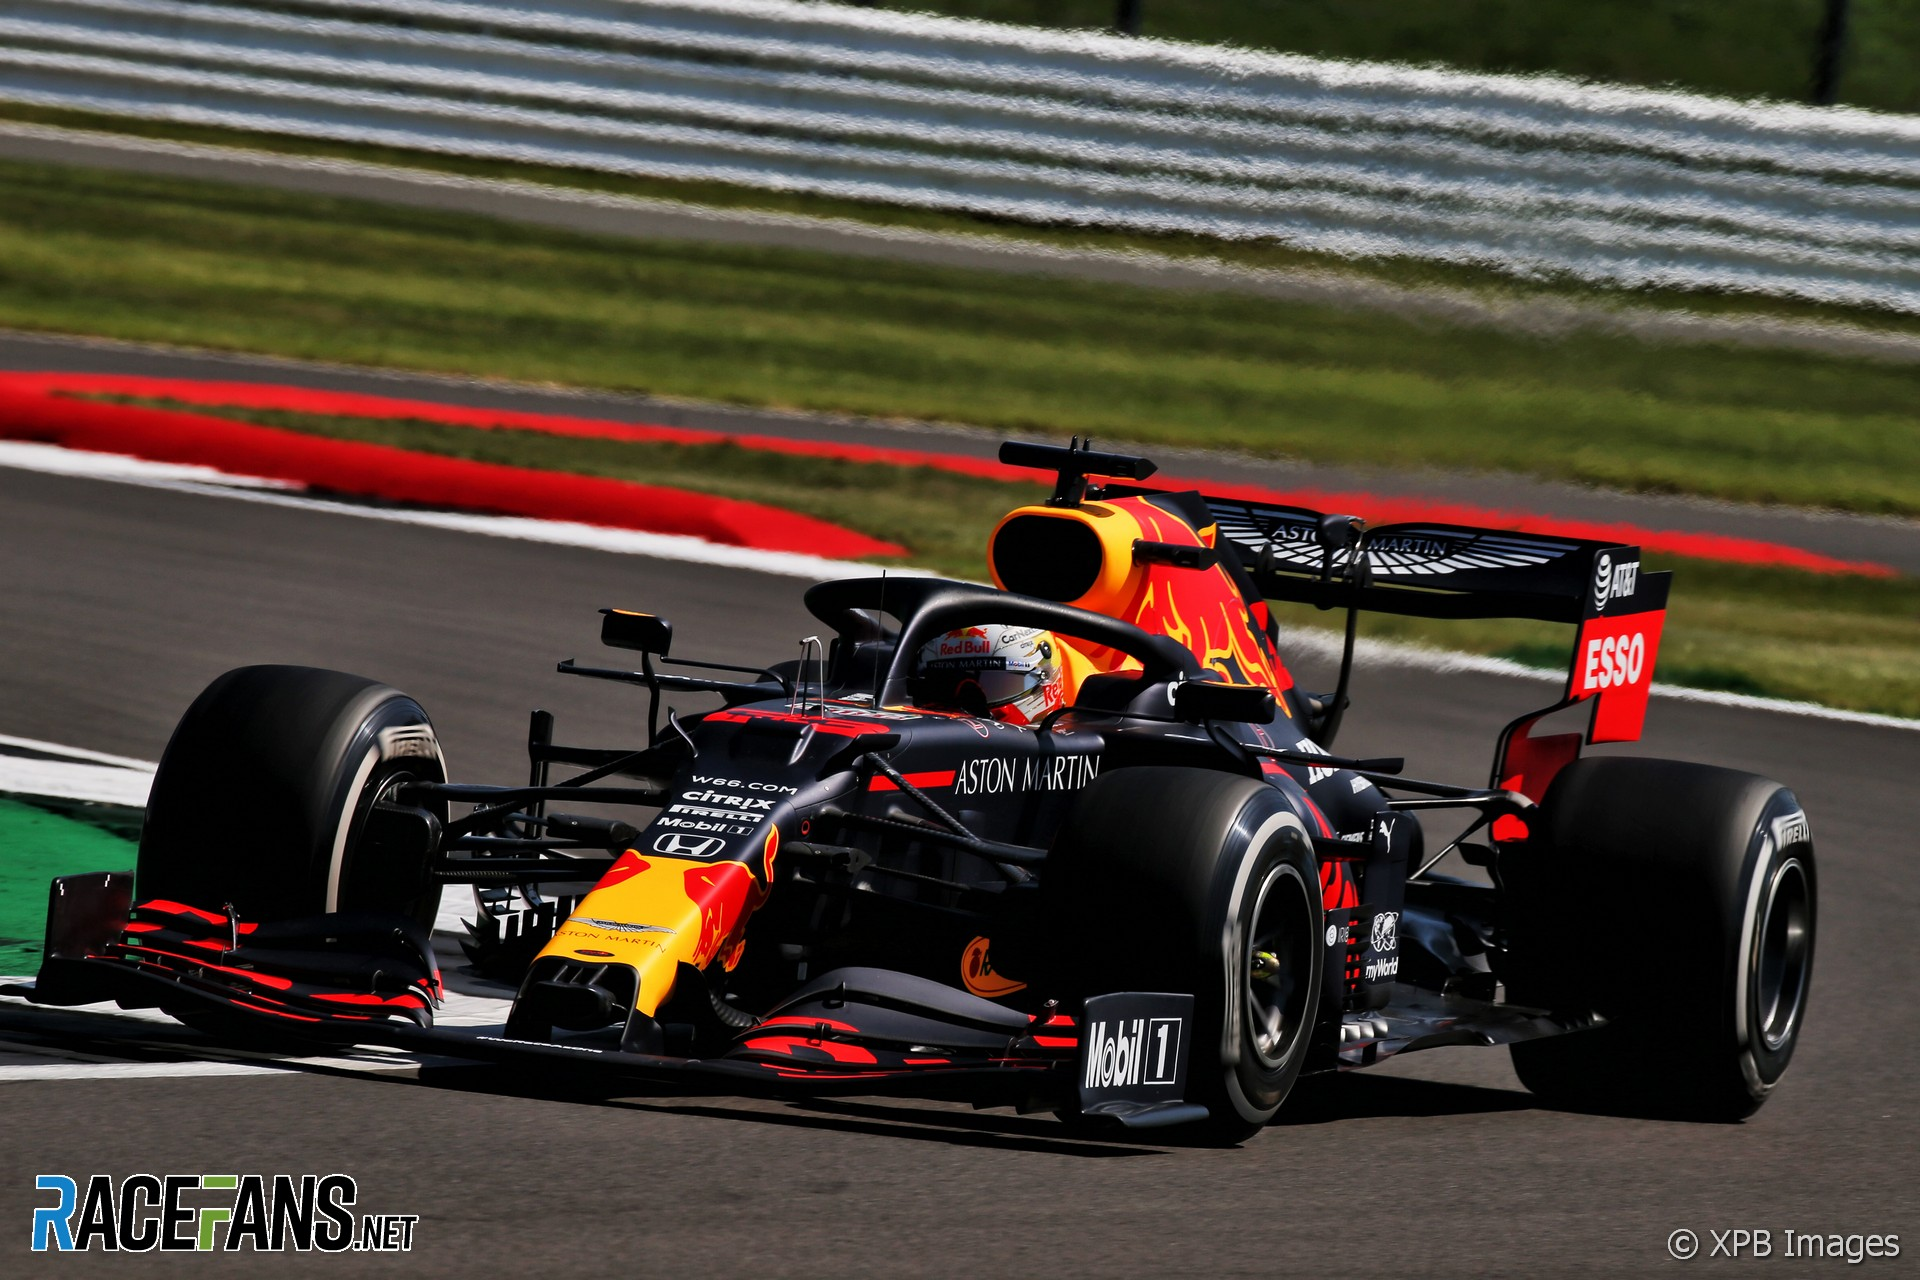 RaceFans Round-up: Red Bull handling better after upgrades thumbnail